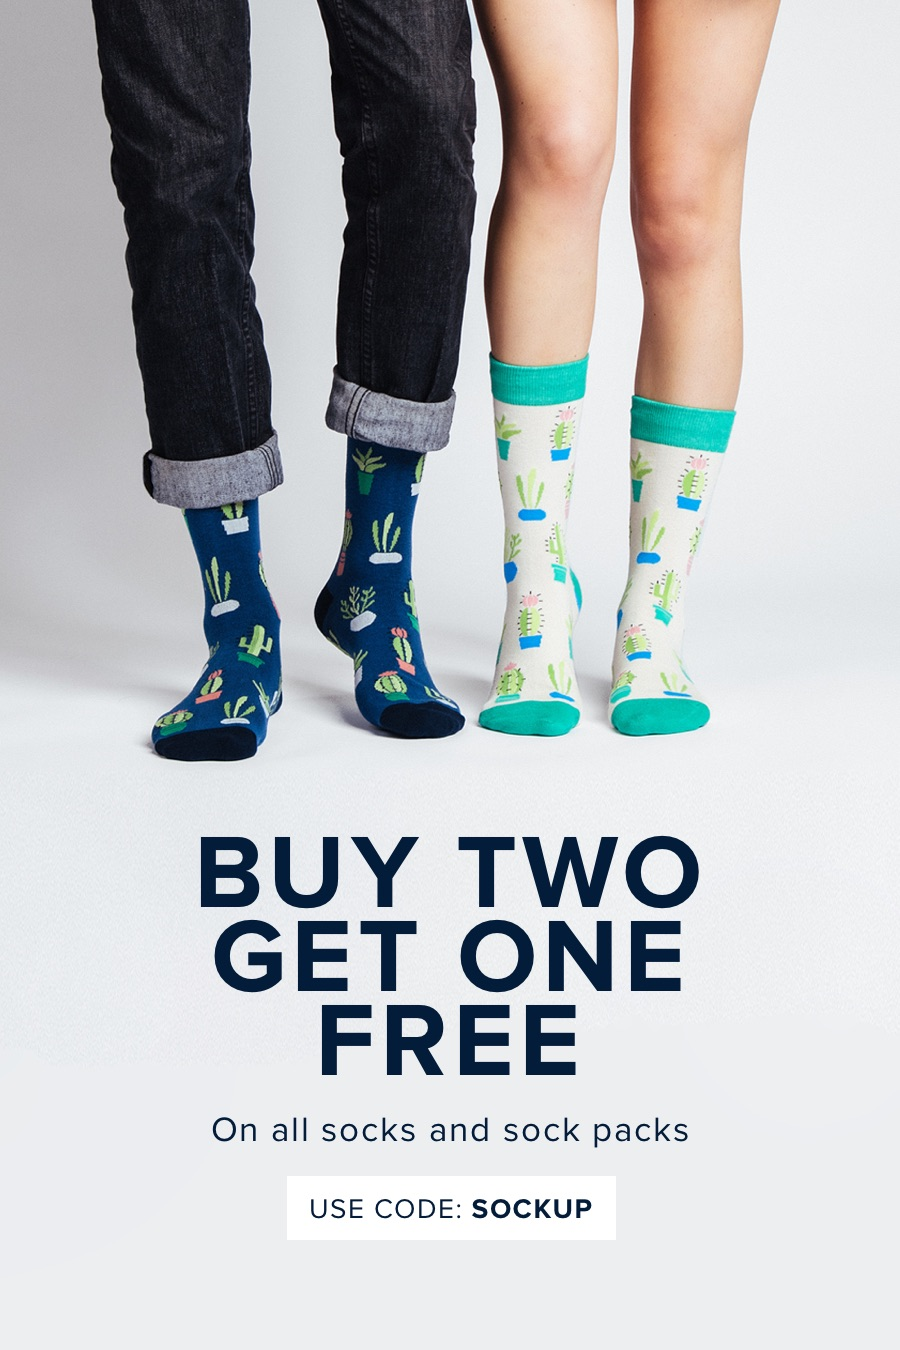 Buy 2 Get 1 Free on all Socks with code SOCKUP